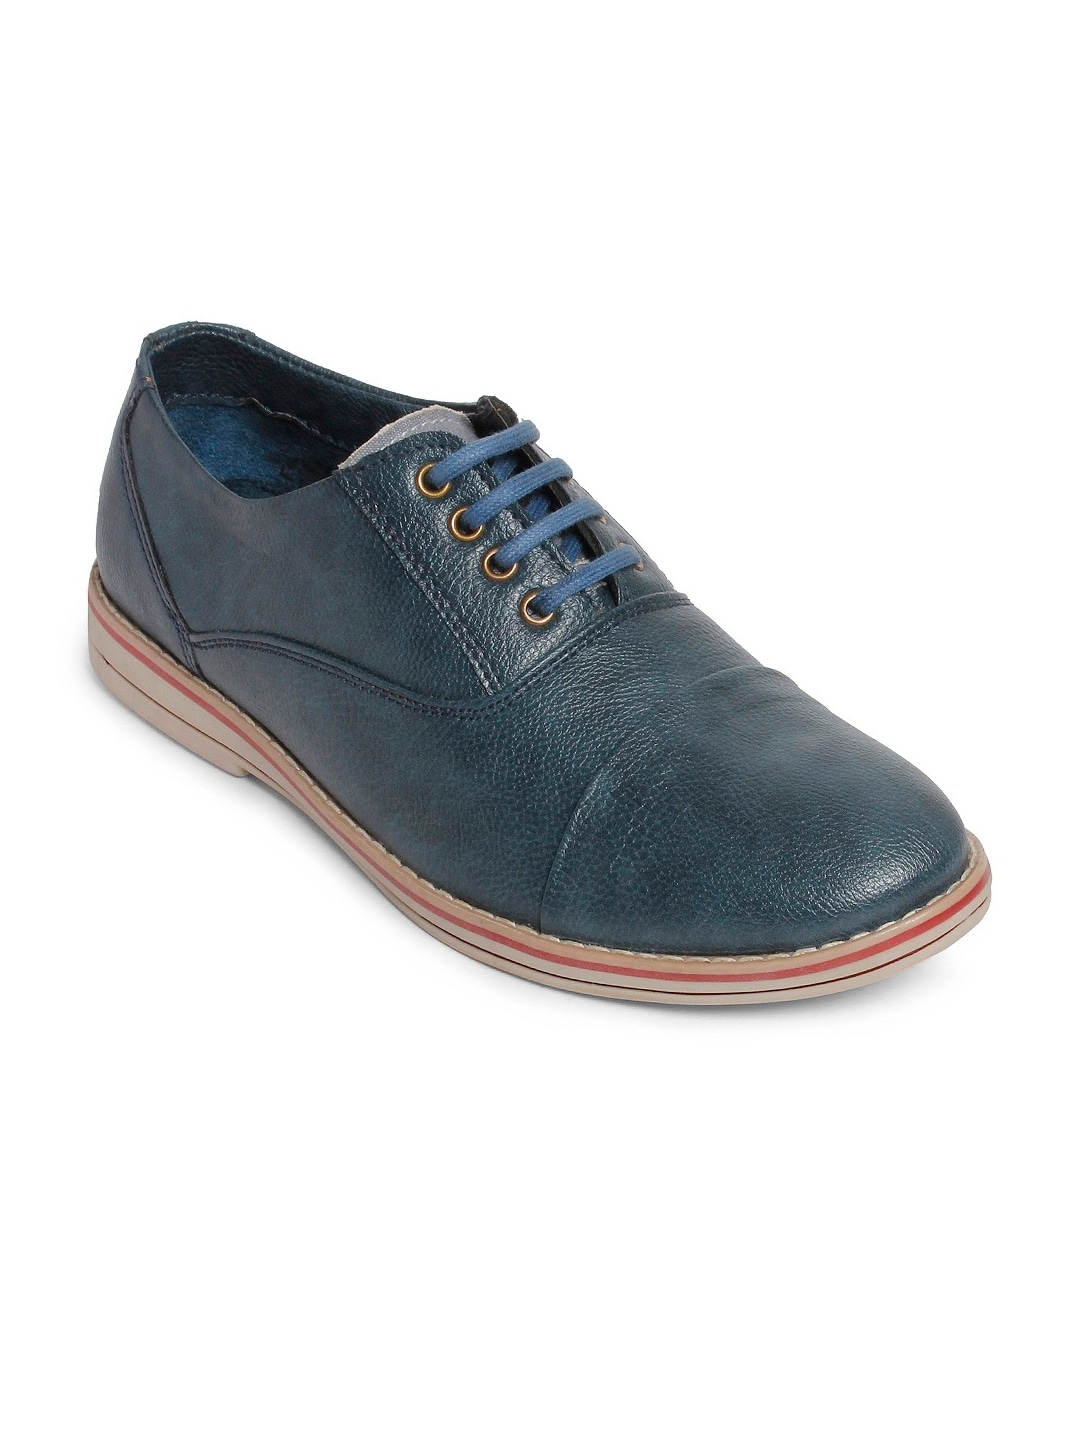 cb48af8364b Bacca Bucci Shoes - Bacca Bucci Shoes Online in India